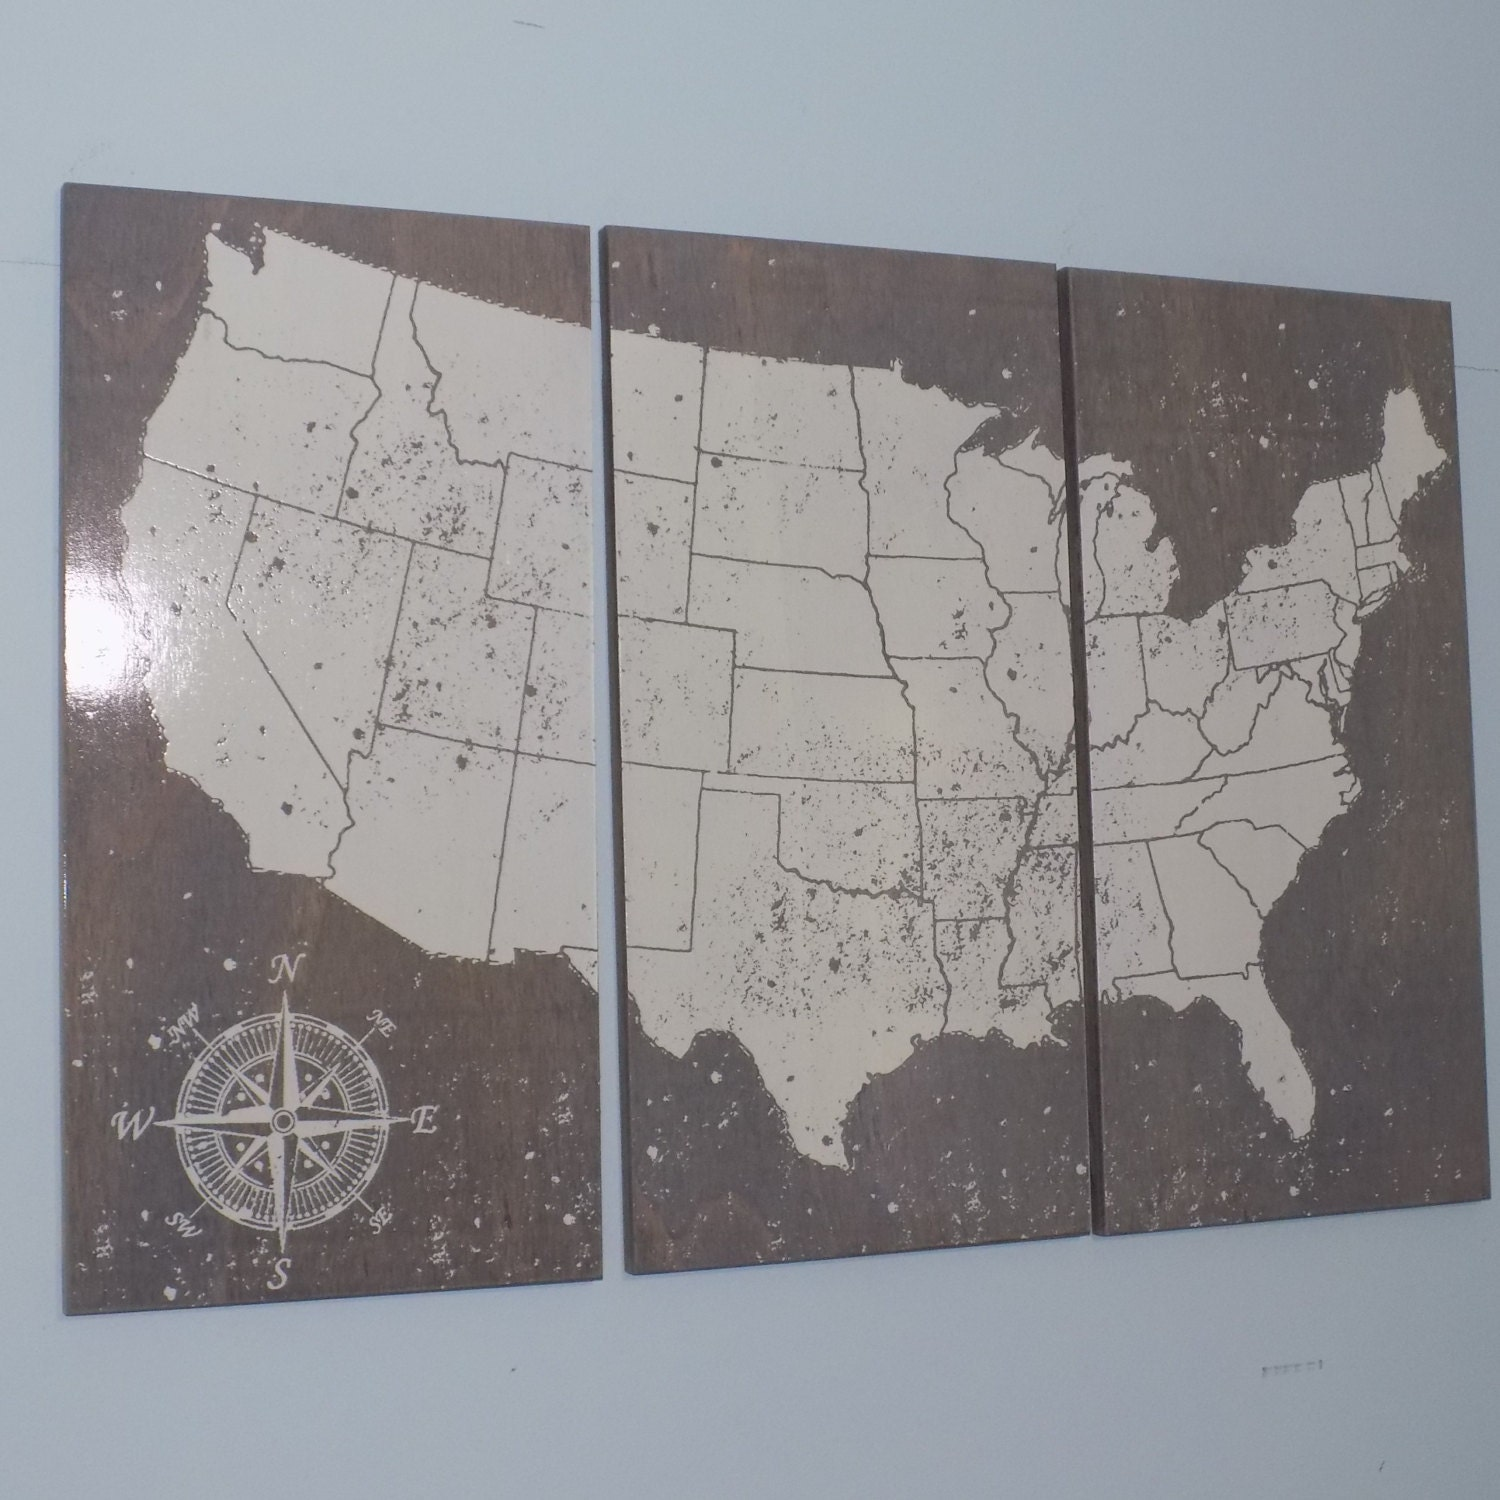 Map Art Wedding Gift : USA Push Pin Travel Map Wall Art Wedding Gift by CedarWorkshop